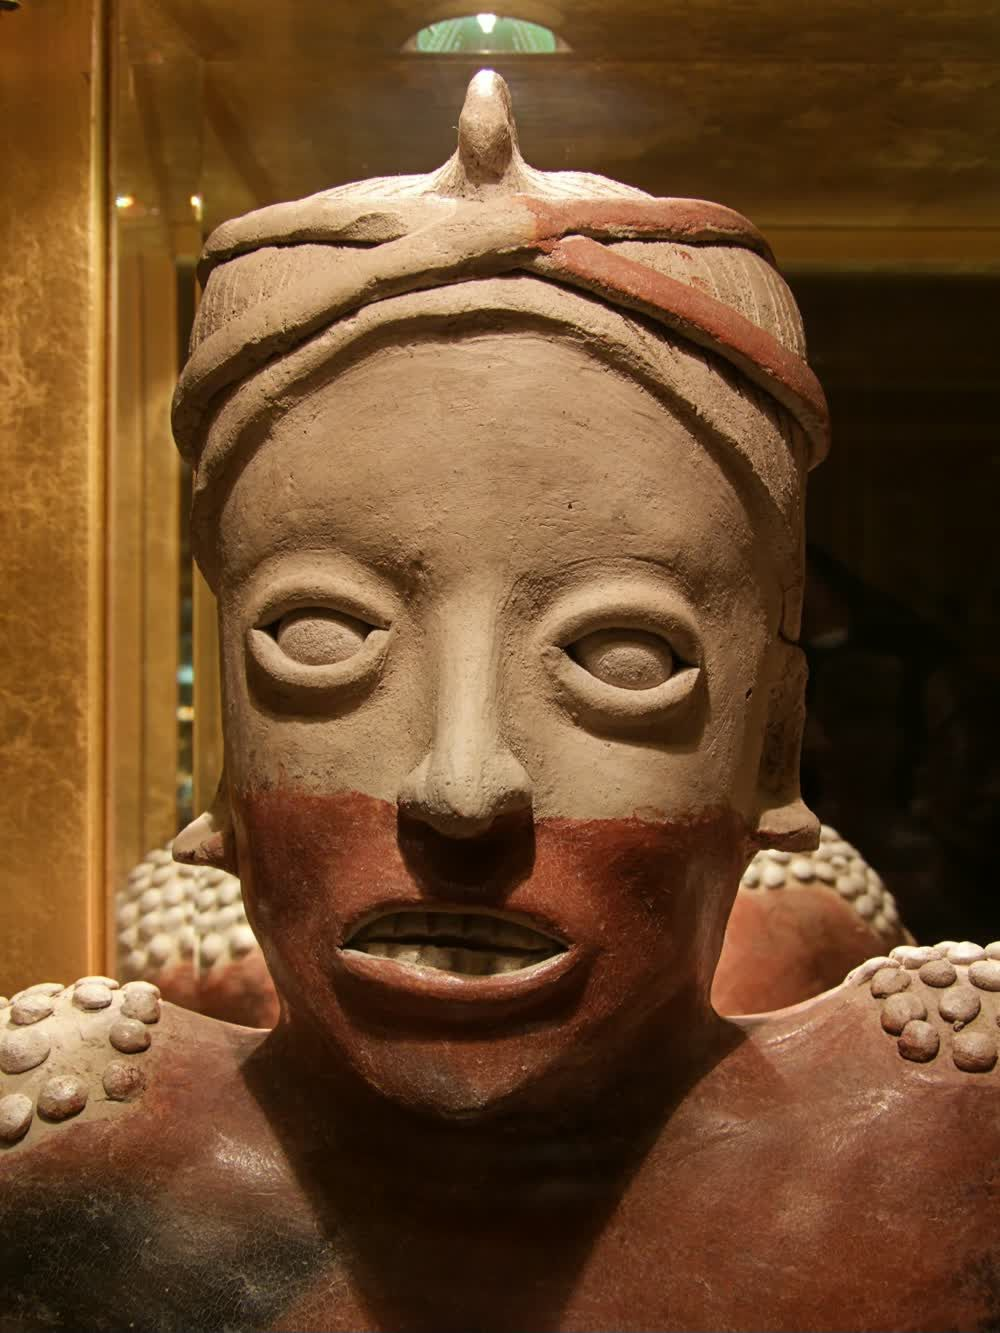 title: Ethiopian Head Bust at the Emirates Hotel Art Showcase